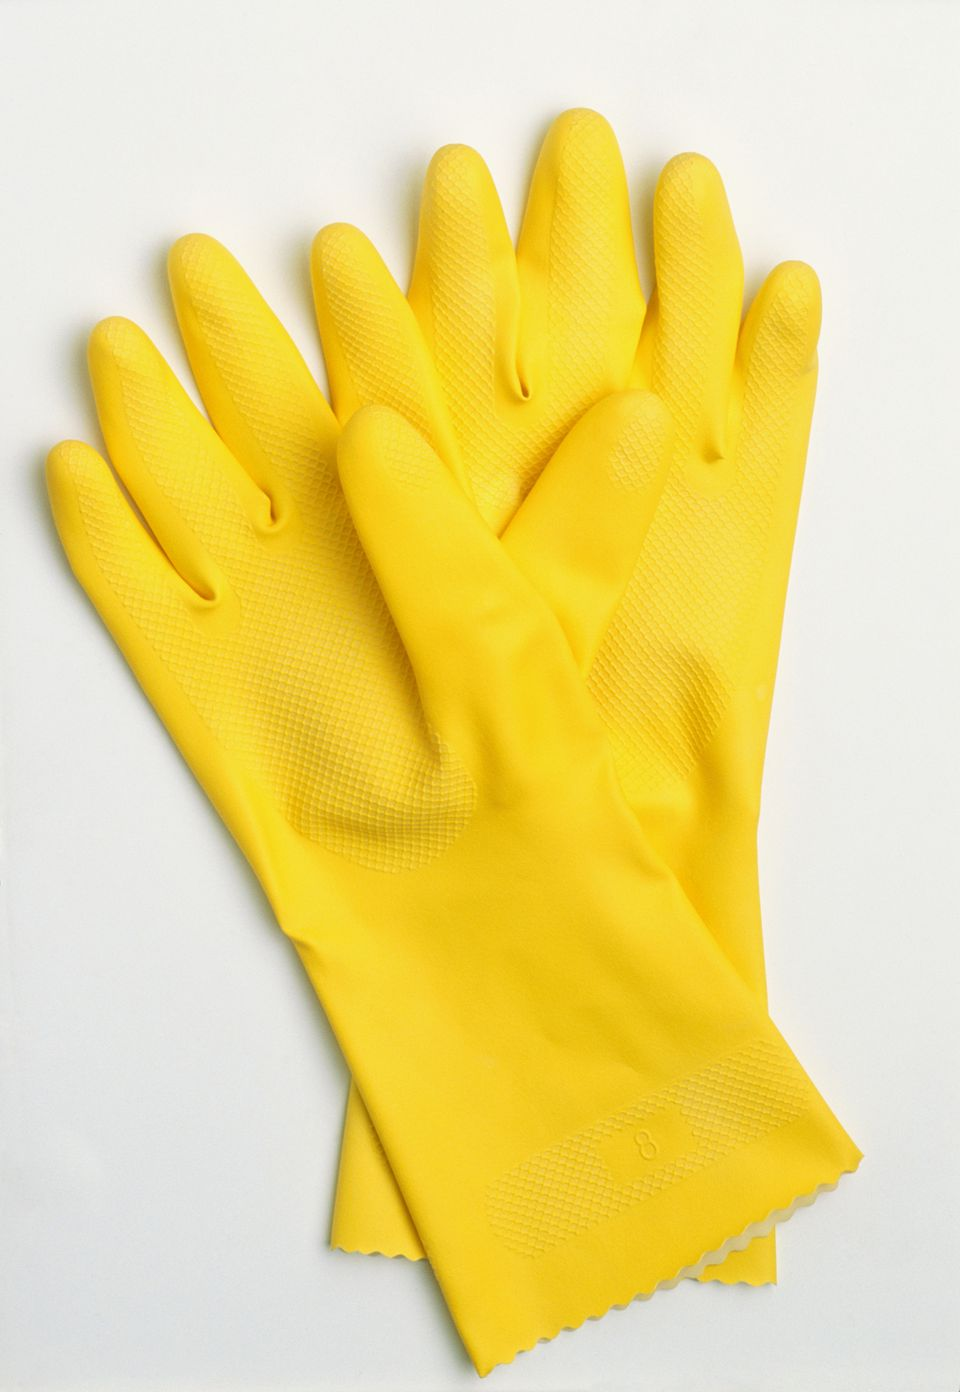 Pair of yellow rubber gloves, view from above.